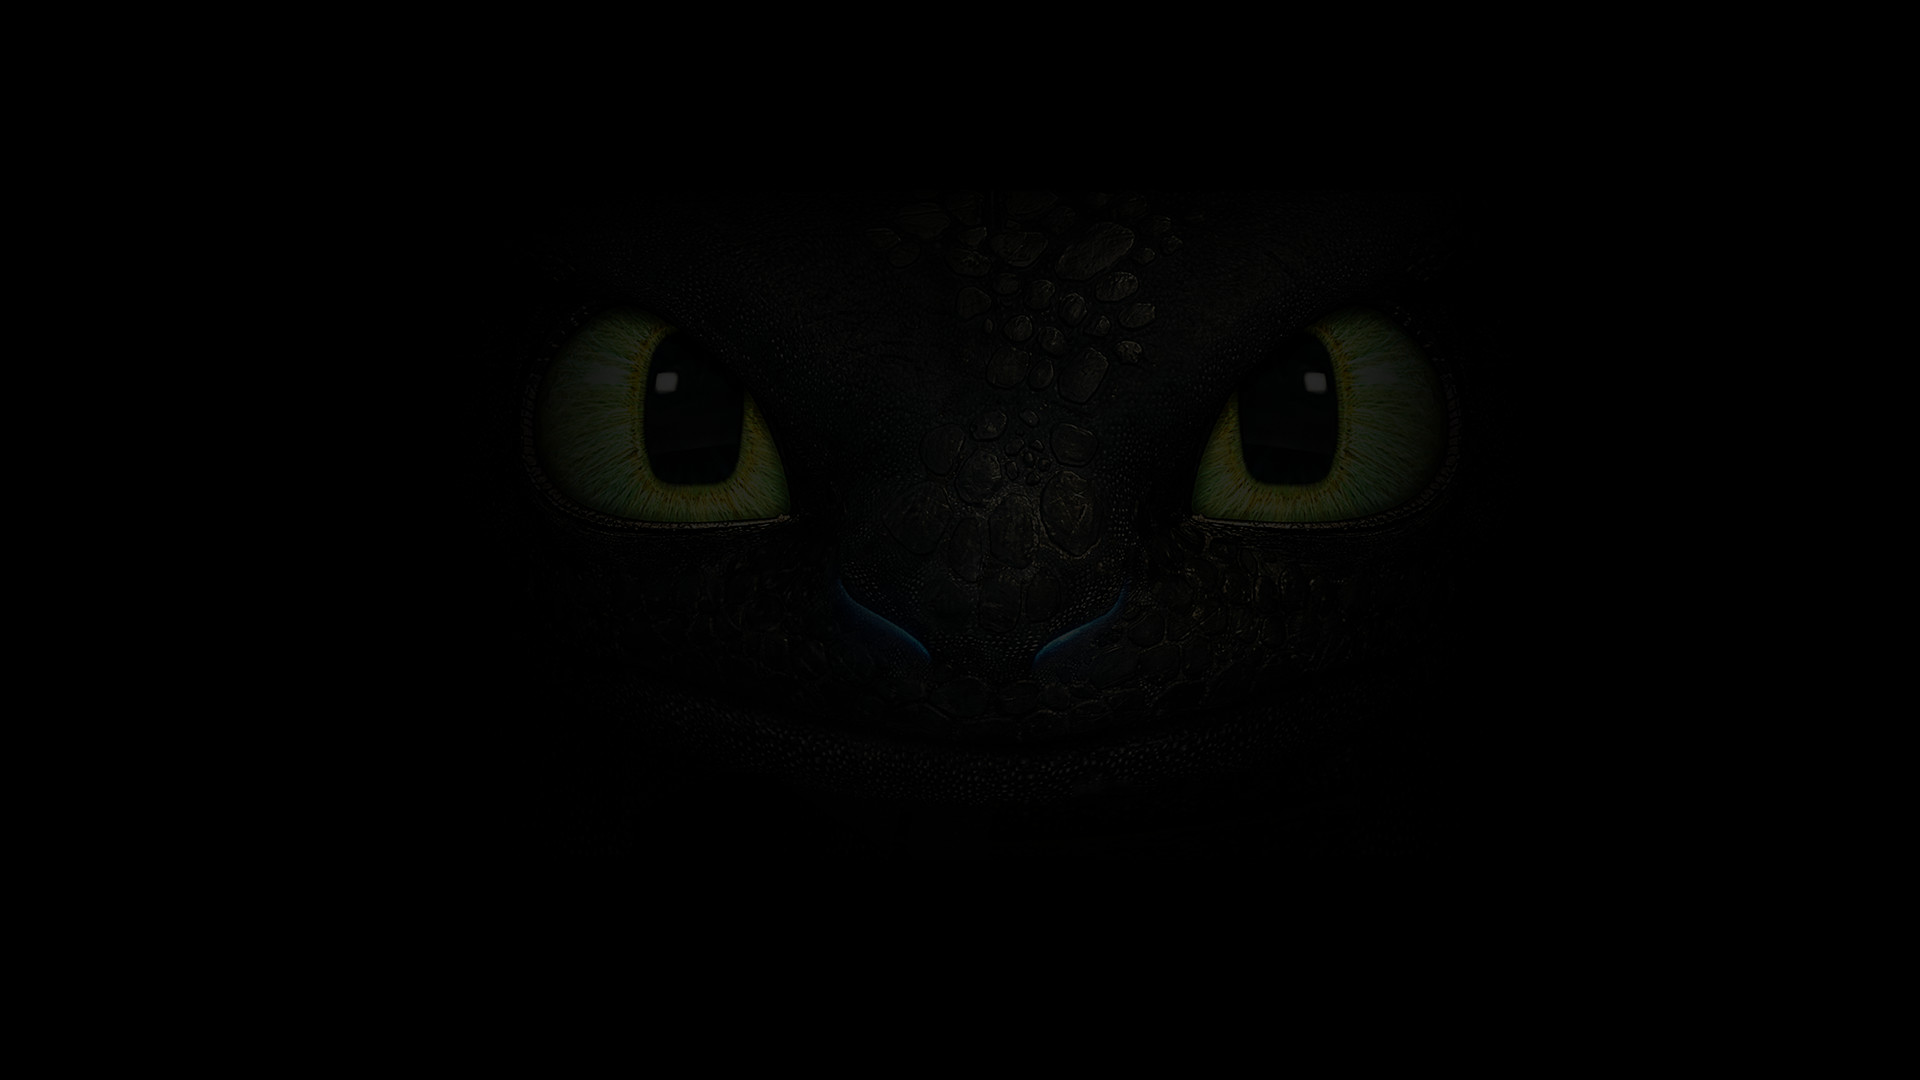 Filename: 4776805-toothless-wallpaper.png